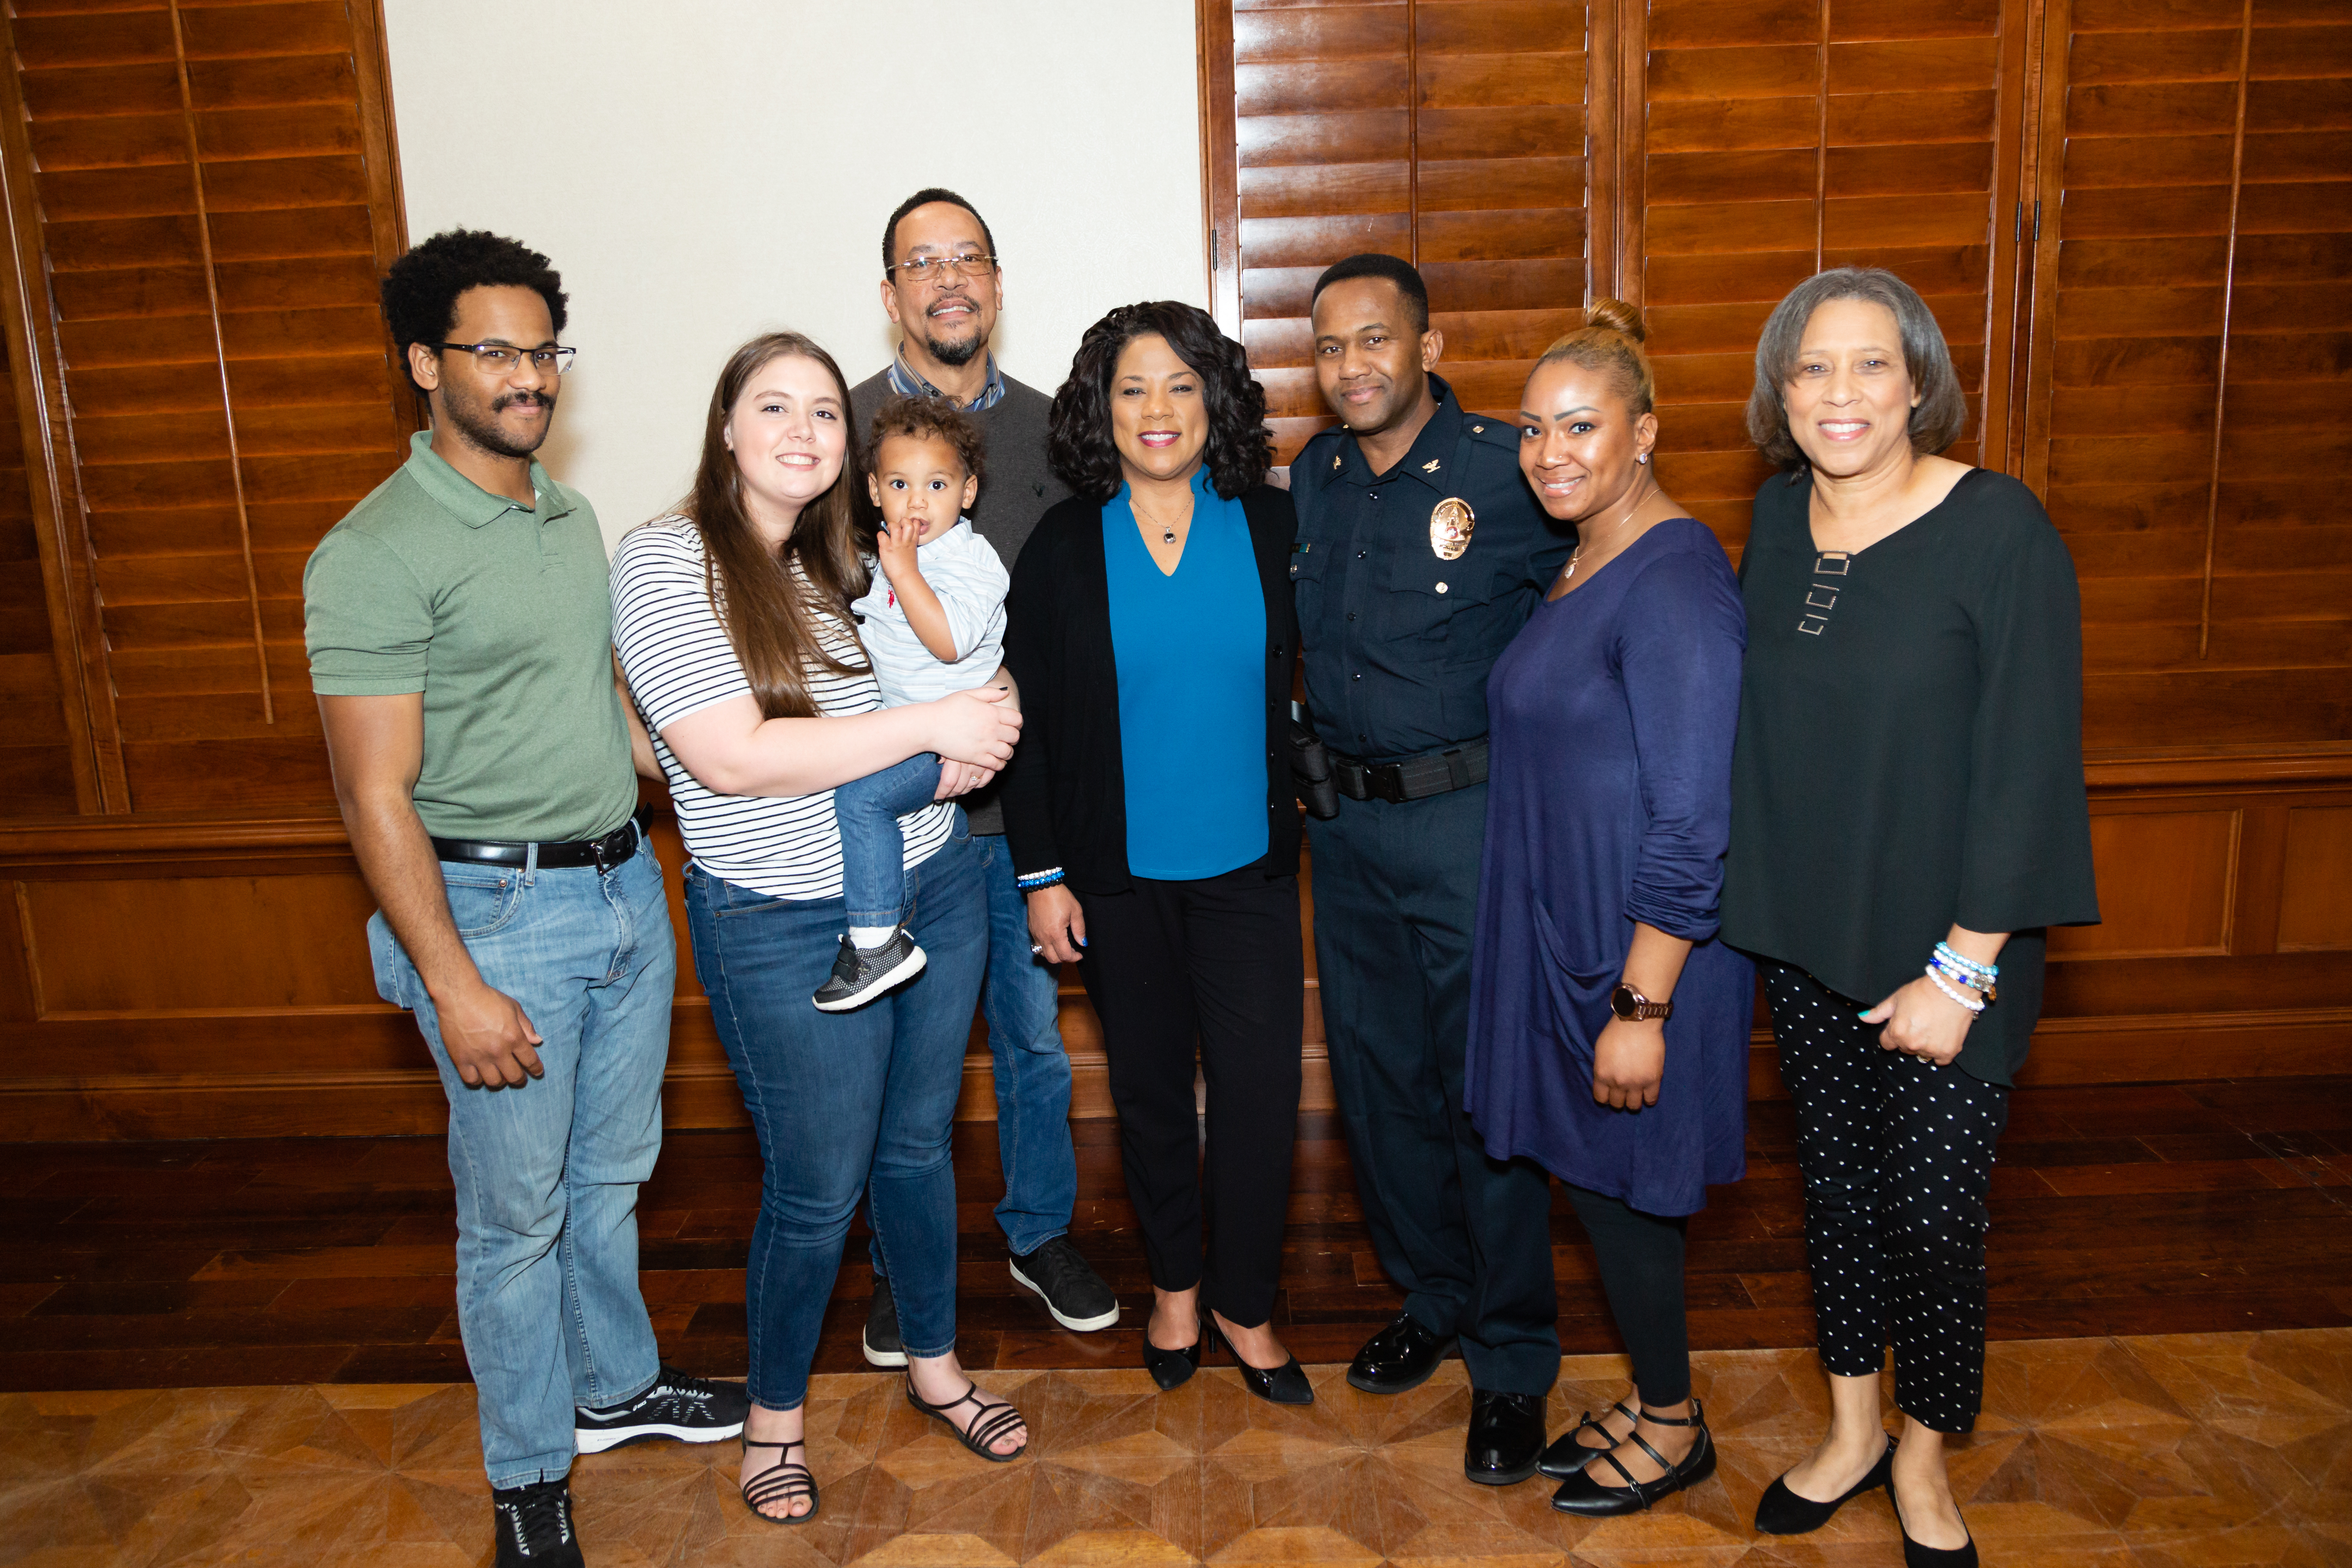 New Chief Nelson surrounded by friends and family at the pinning ceremony.